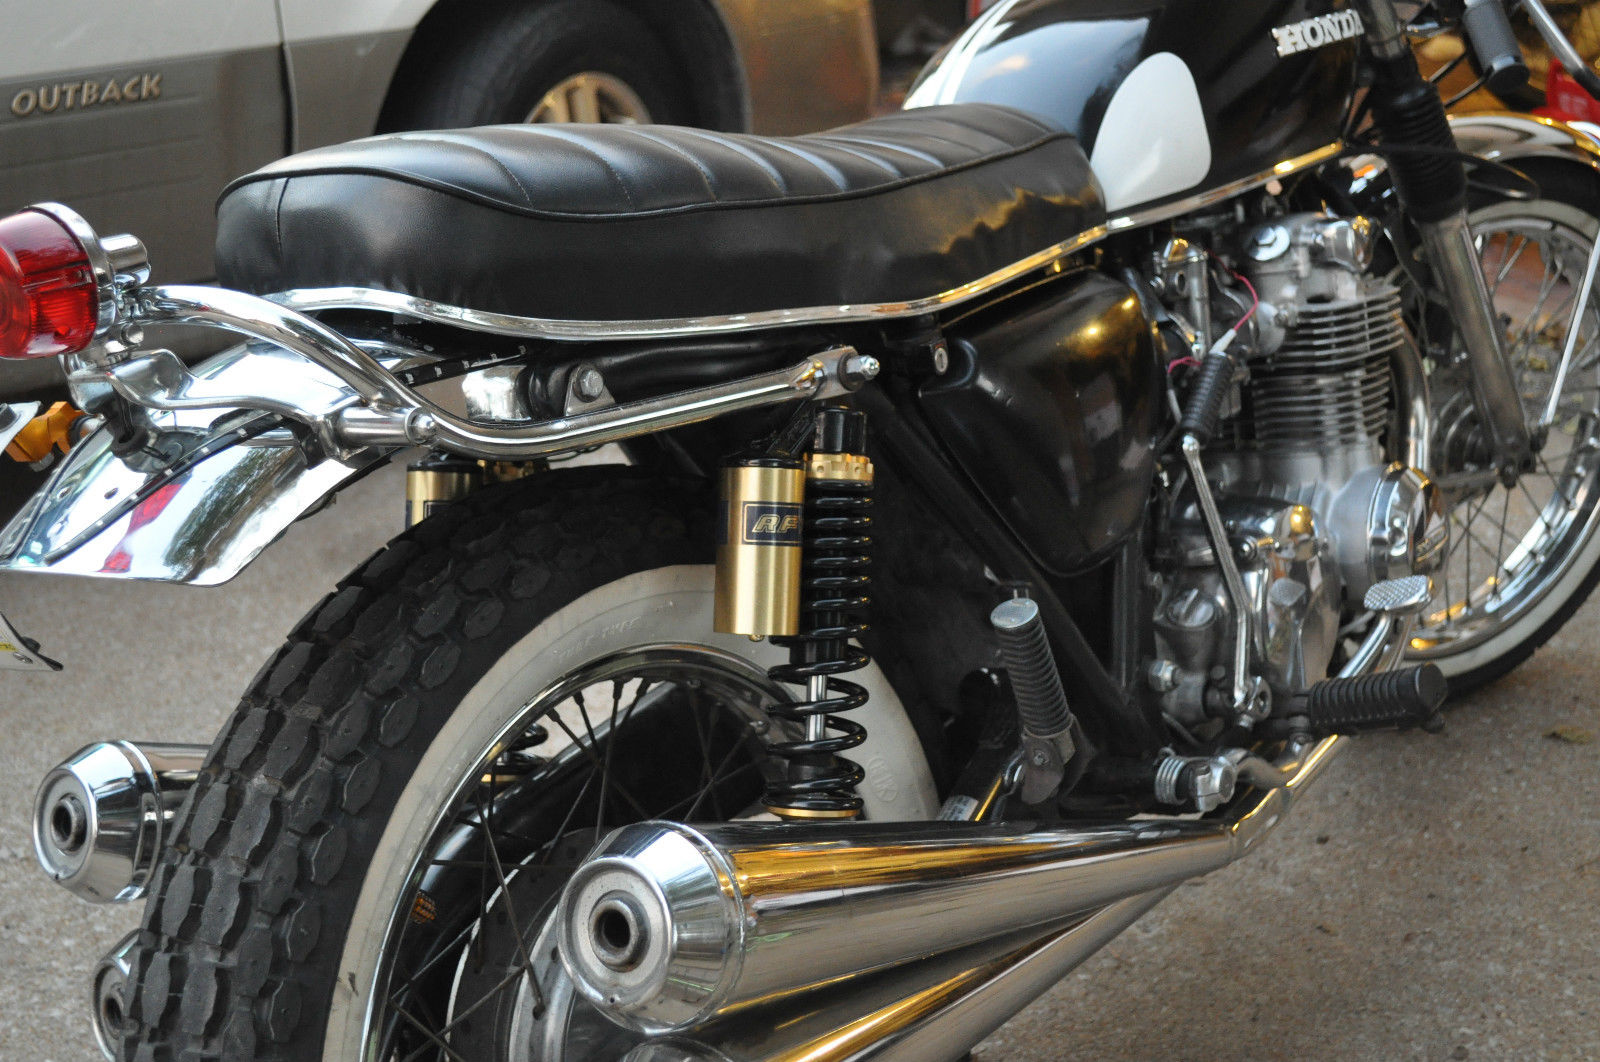 resto mod: honda cb550 k four series tribute build custom cafe racer